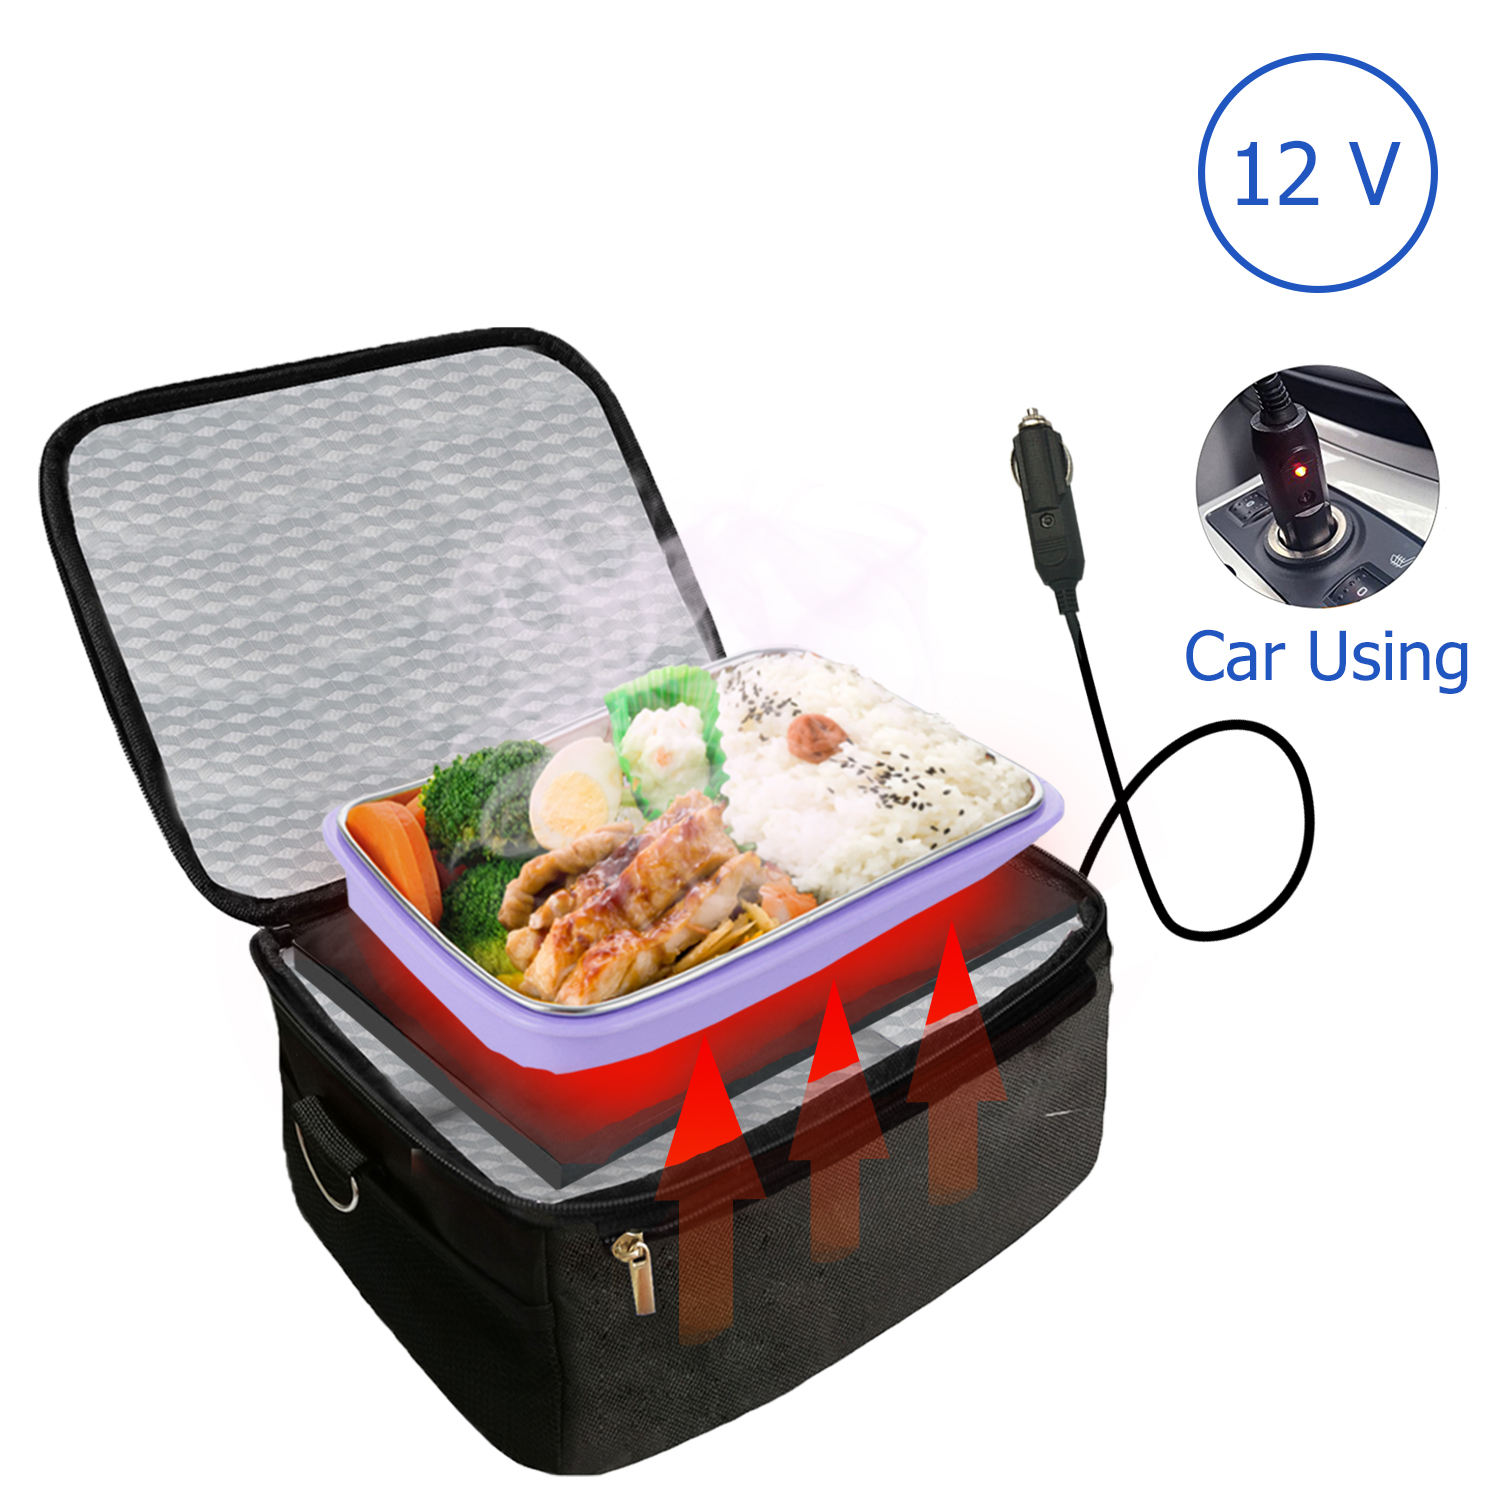 Electric Lunch Box Car Portable Oven and Lunch Warmer - Personal Heating Lunch Box for Reheating Meals &Raw Food Cooking